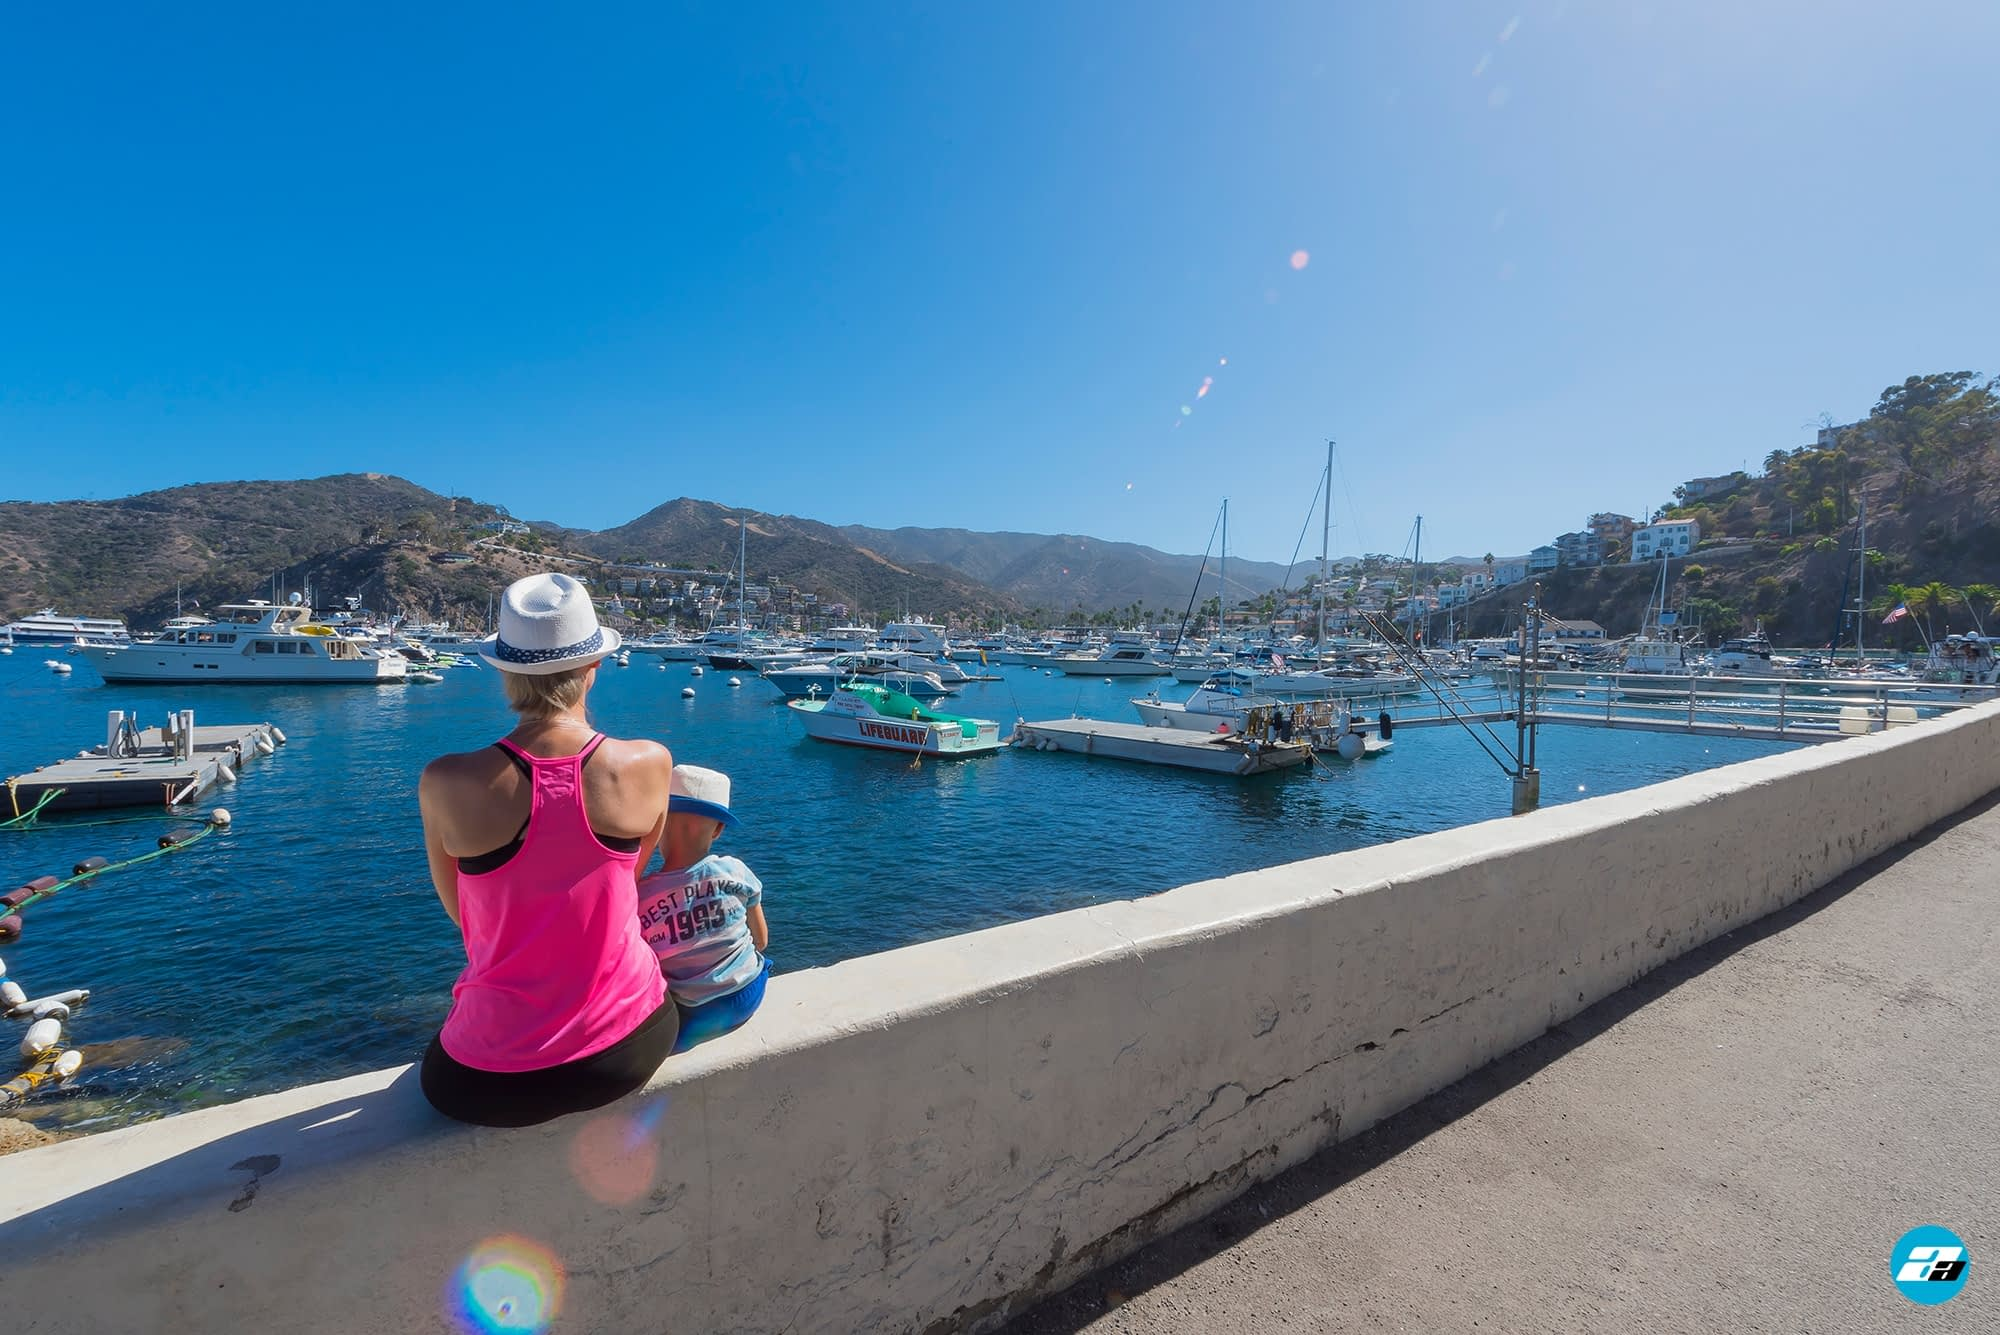 Catalina Island, Chanel Islands National Park, California, Pier View. Boats In Water.